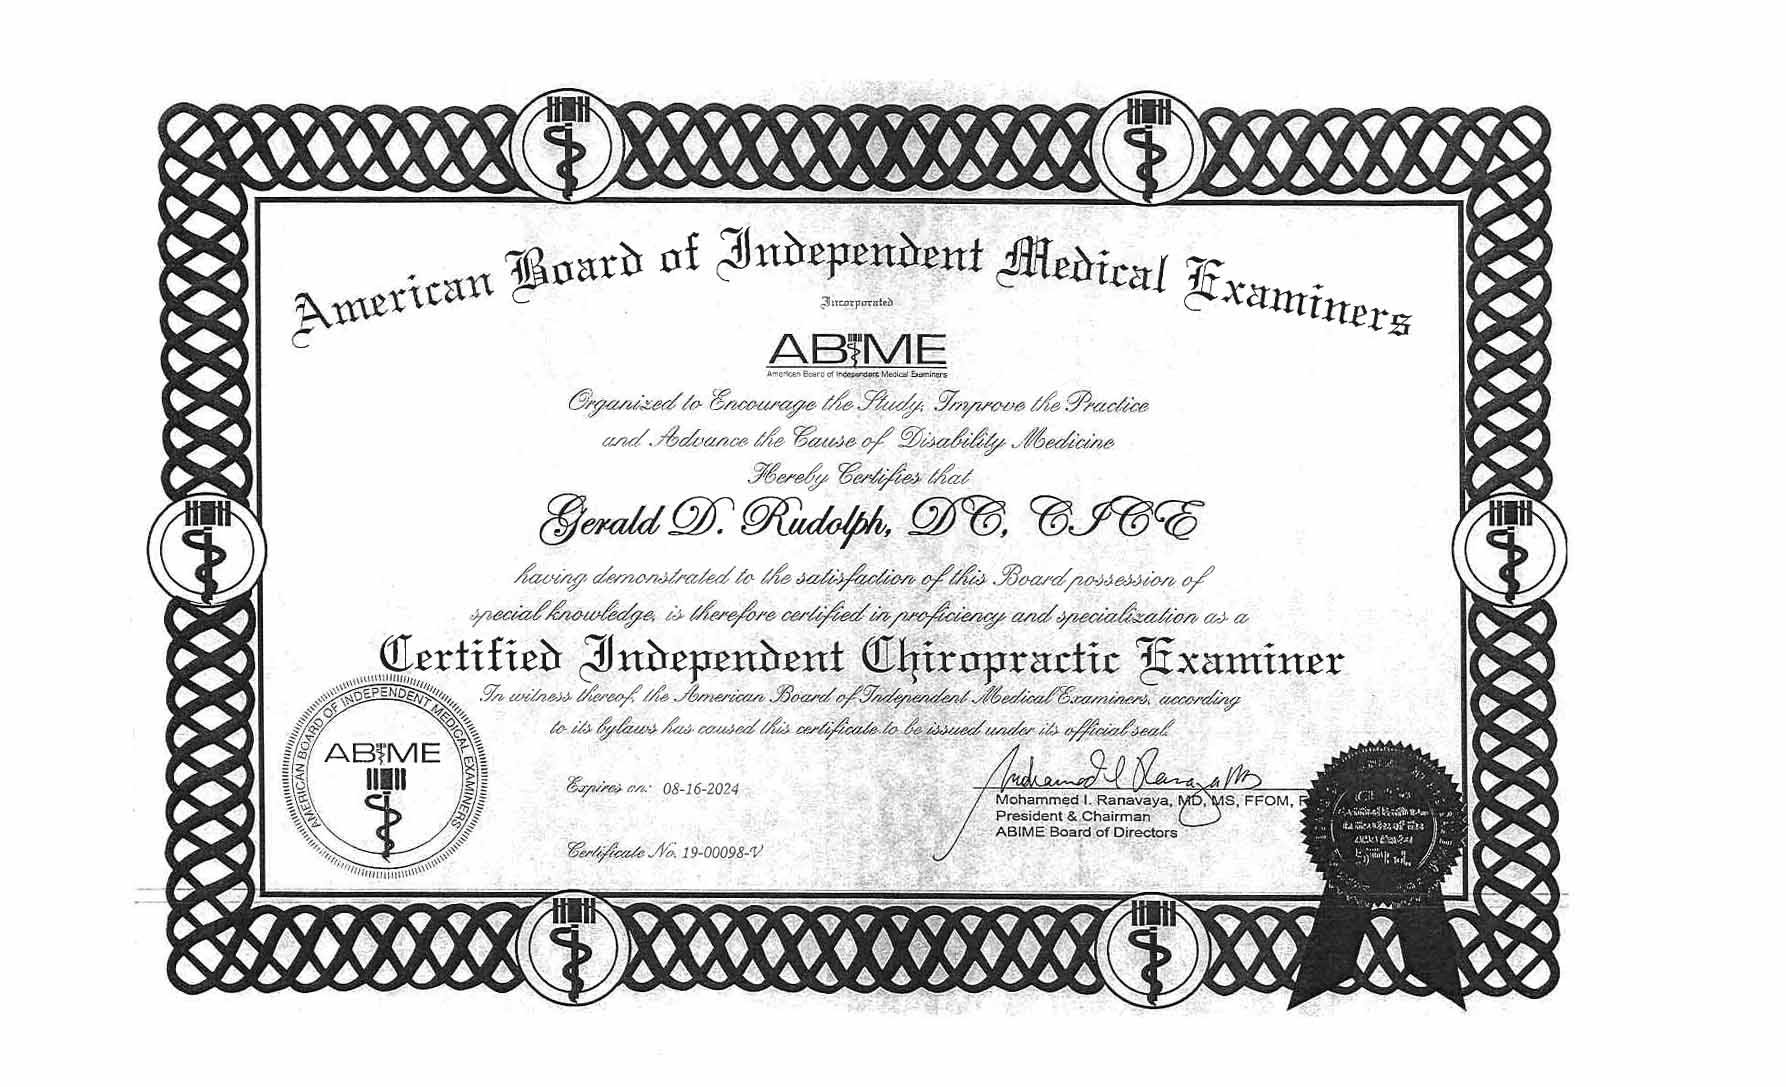 ABIME Certification